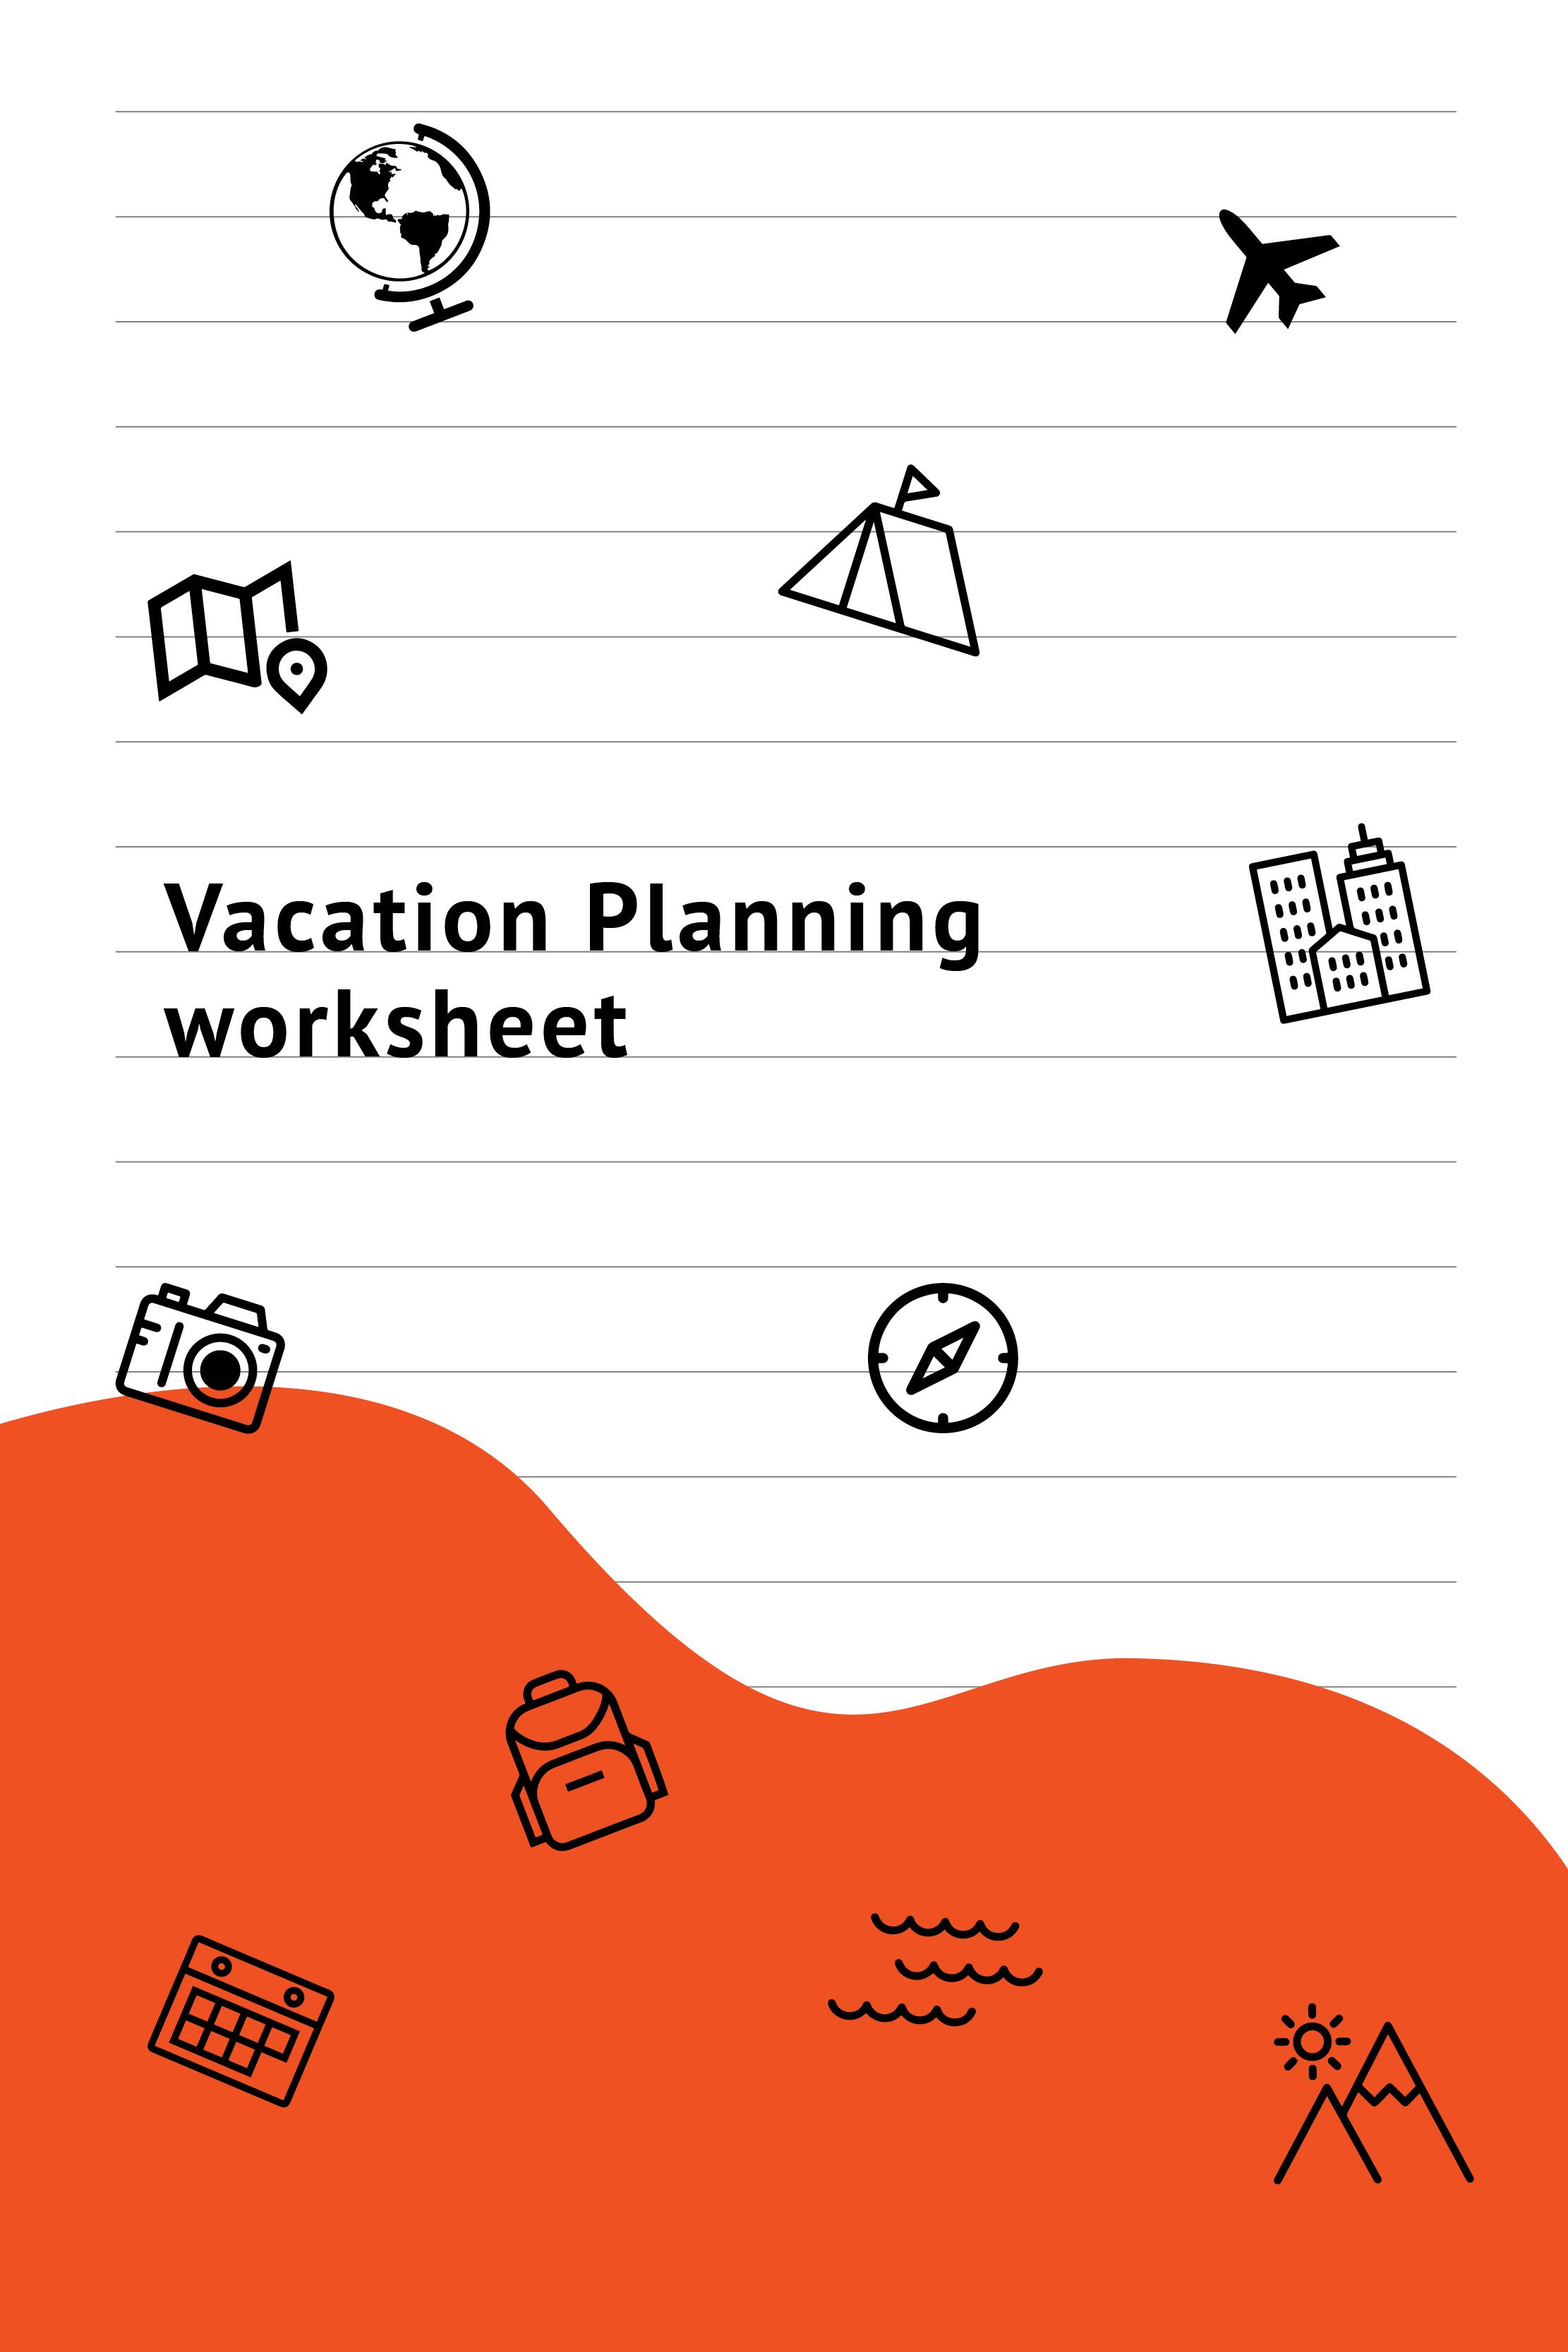 How To Plan A Vacation The Right Way